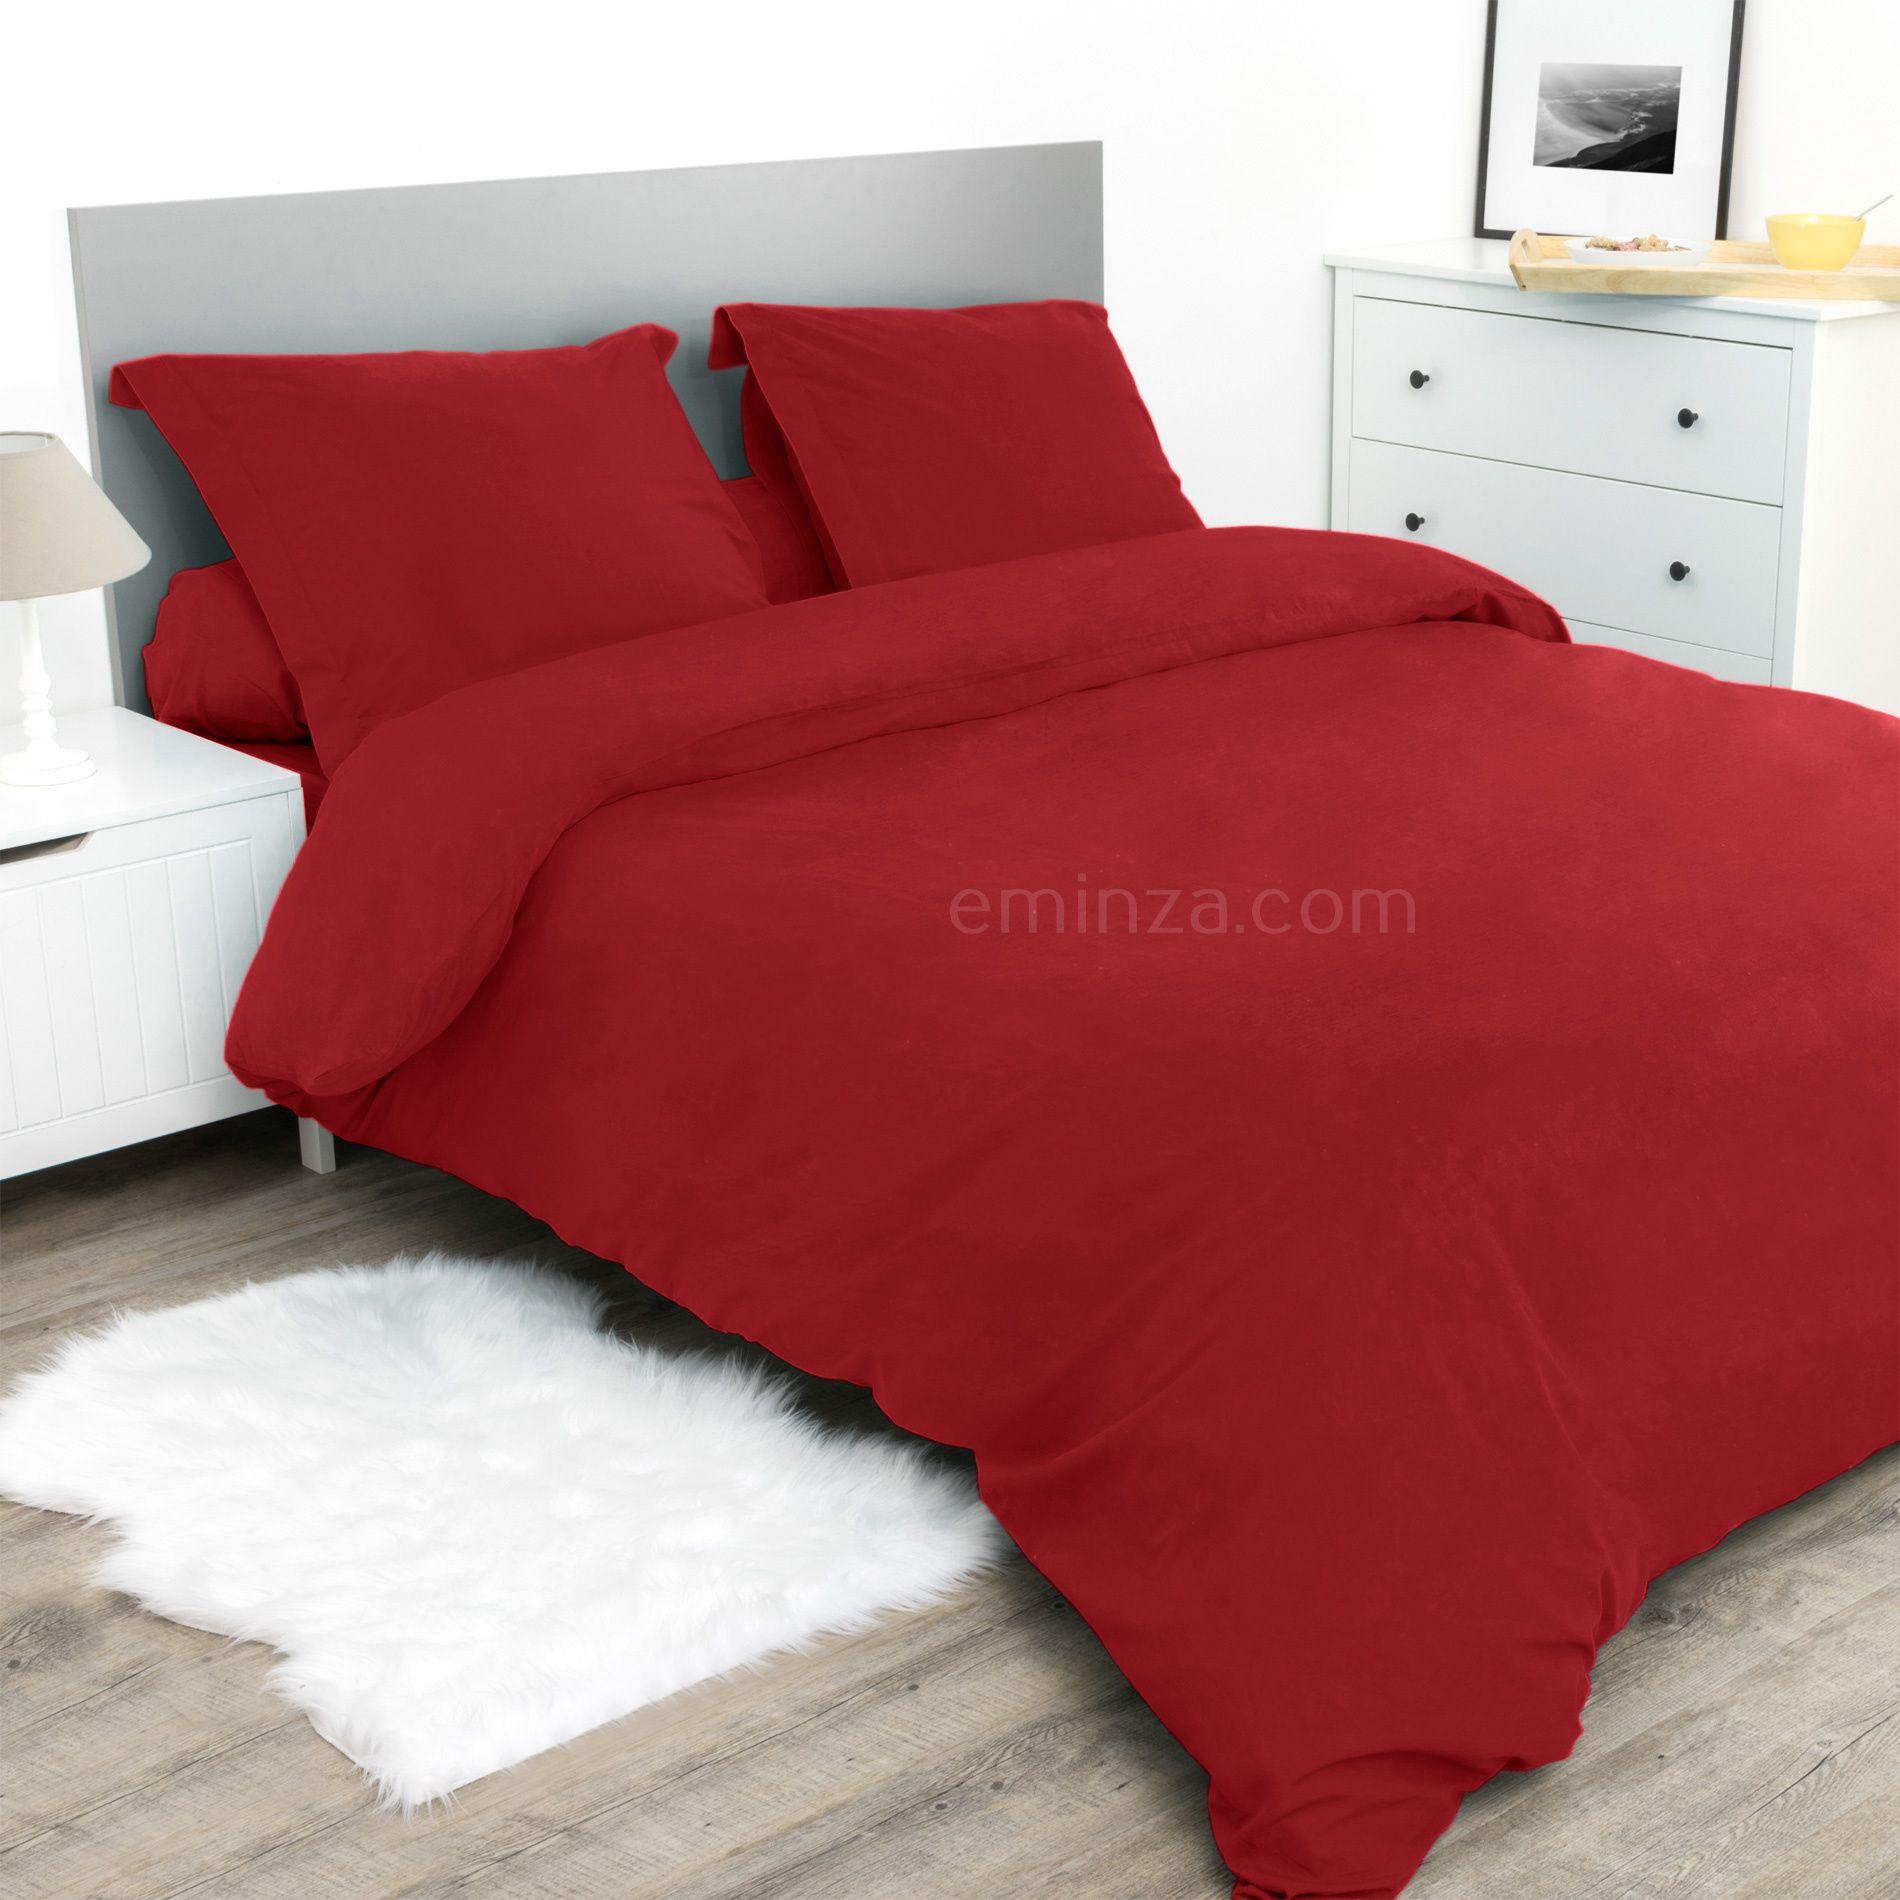 housse de couette 240 cm confort rouge housse de couette eminza. Black Bedroom Furniture Sets. Home Design Ideas